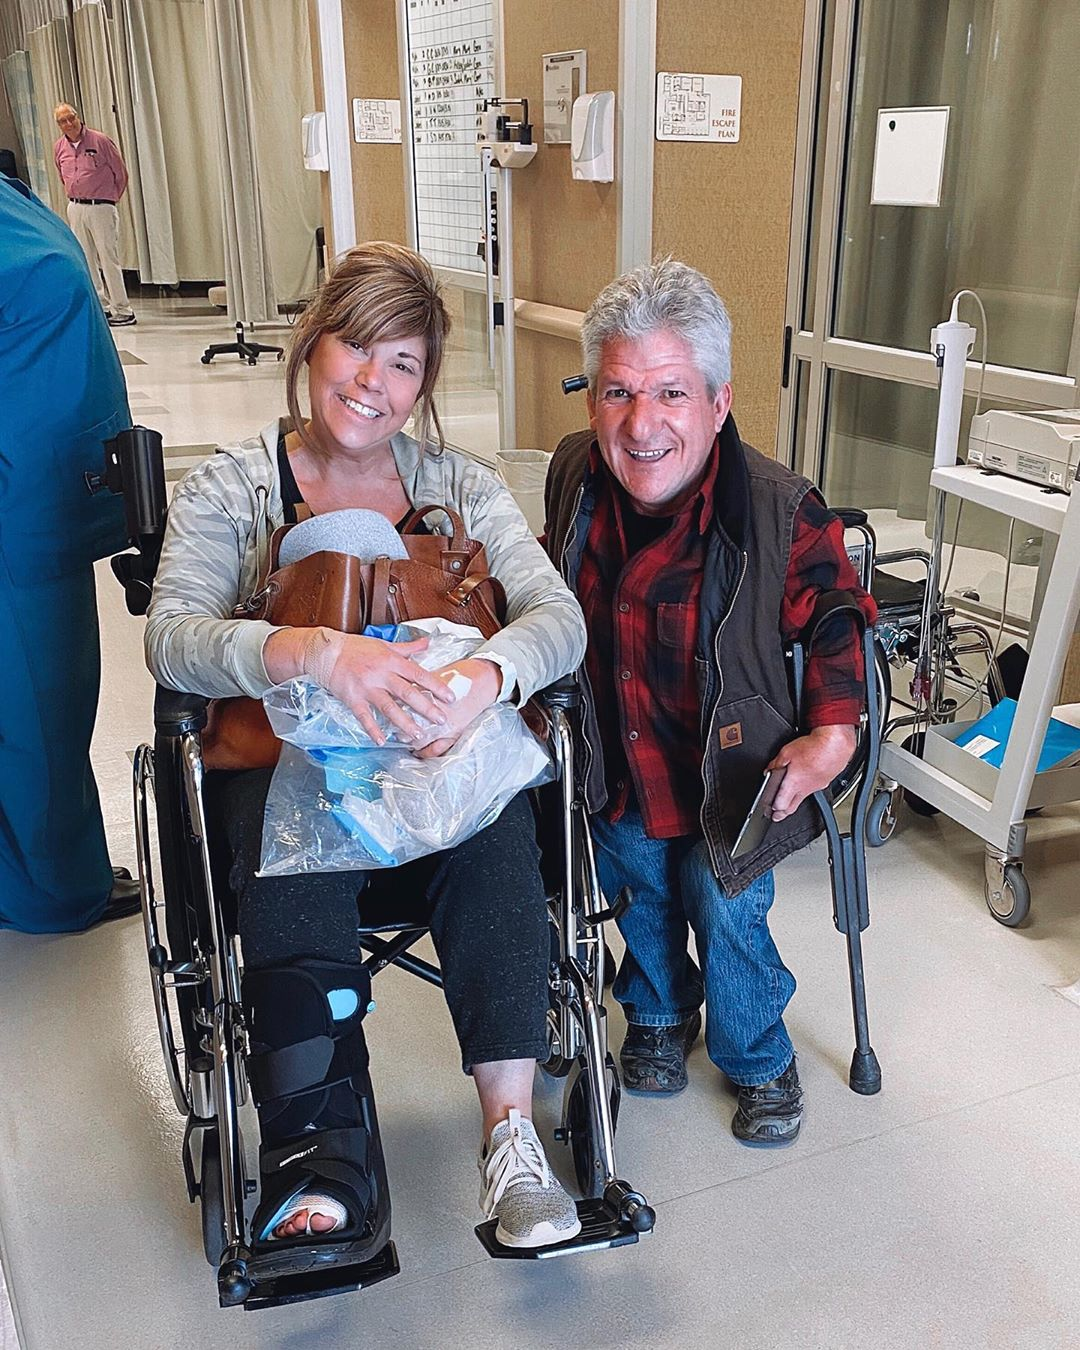 Matt Roloff's Girlfriend Caryn Chandler Hospitalized for 'painful bone spur' Procedure